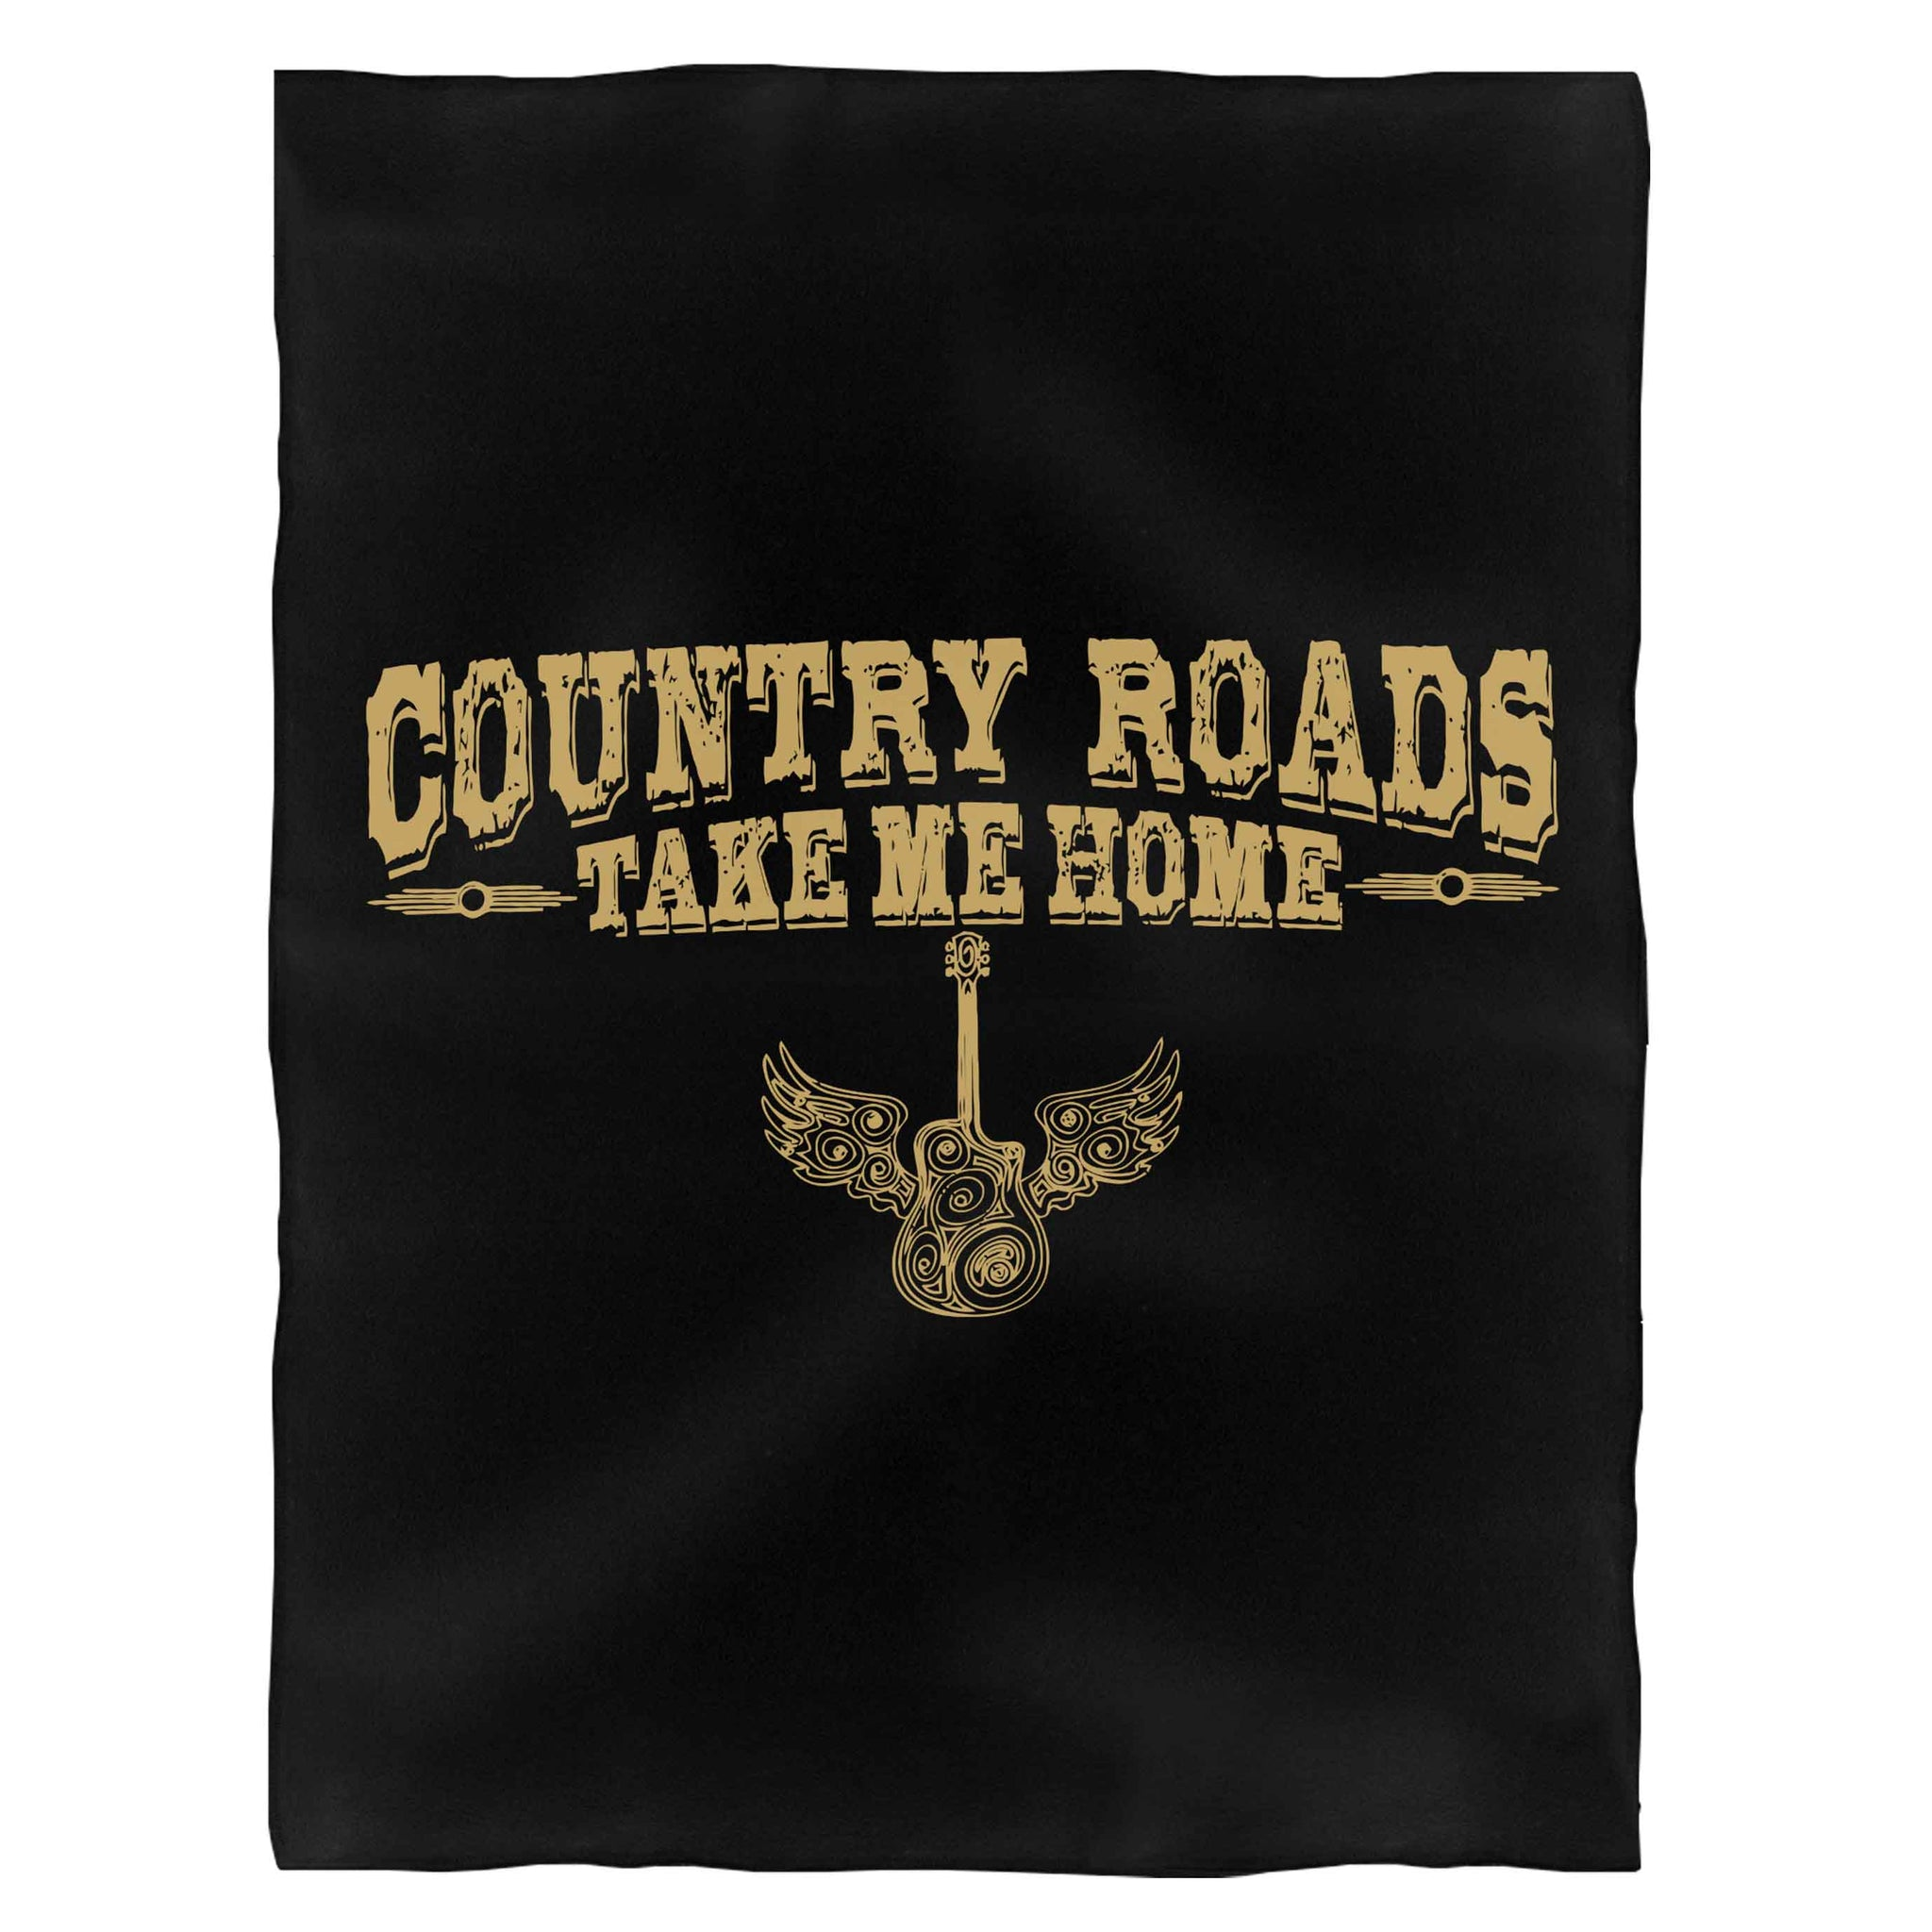 Country Roads Take Me Home Fleece Blanket